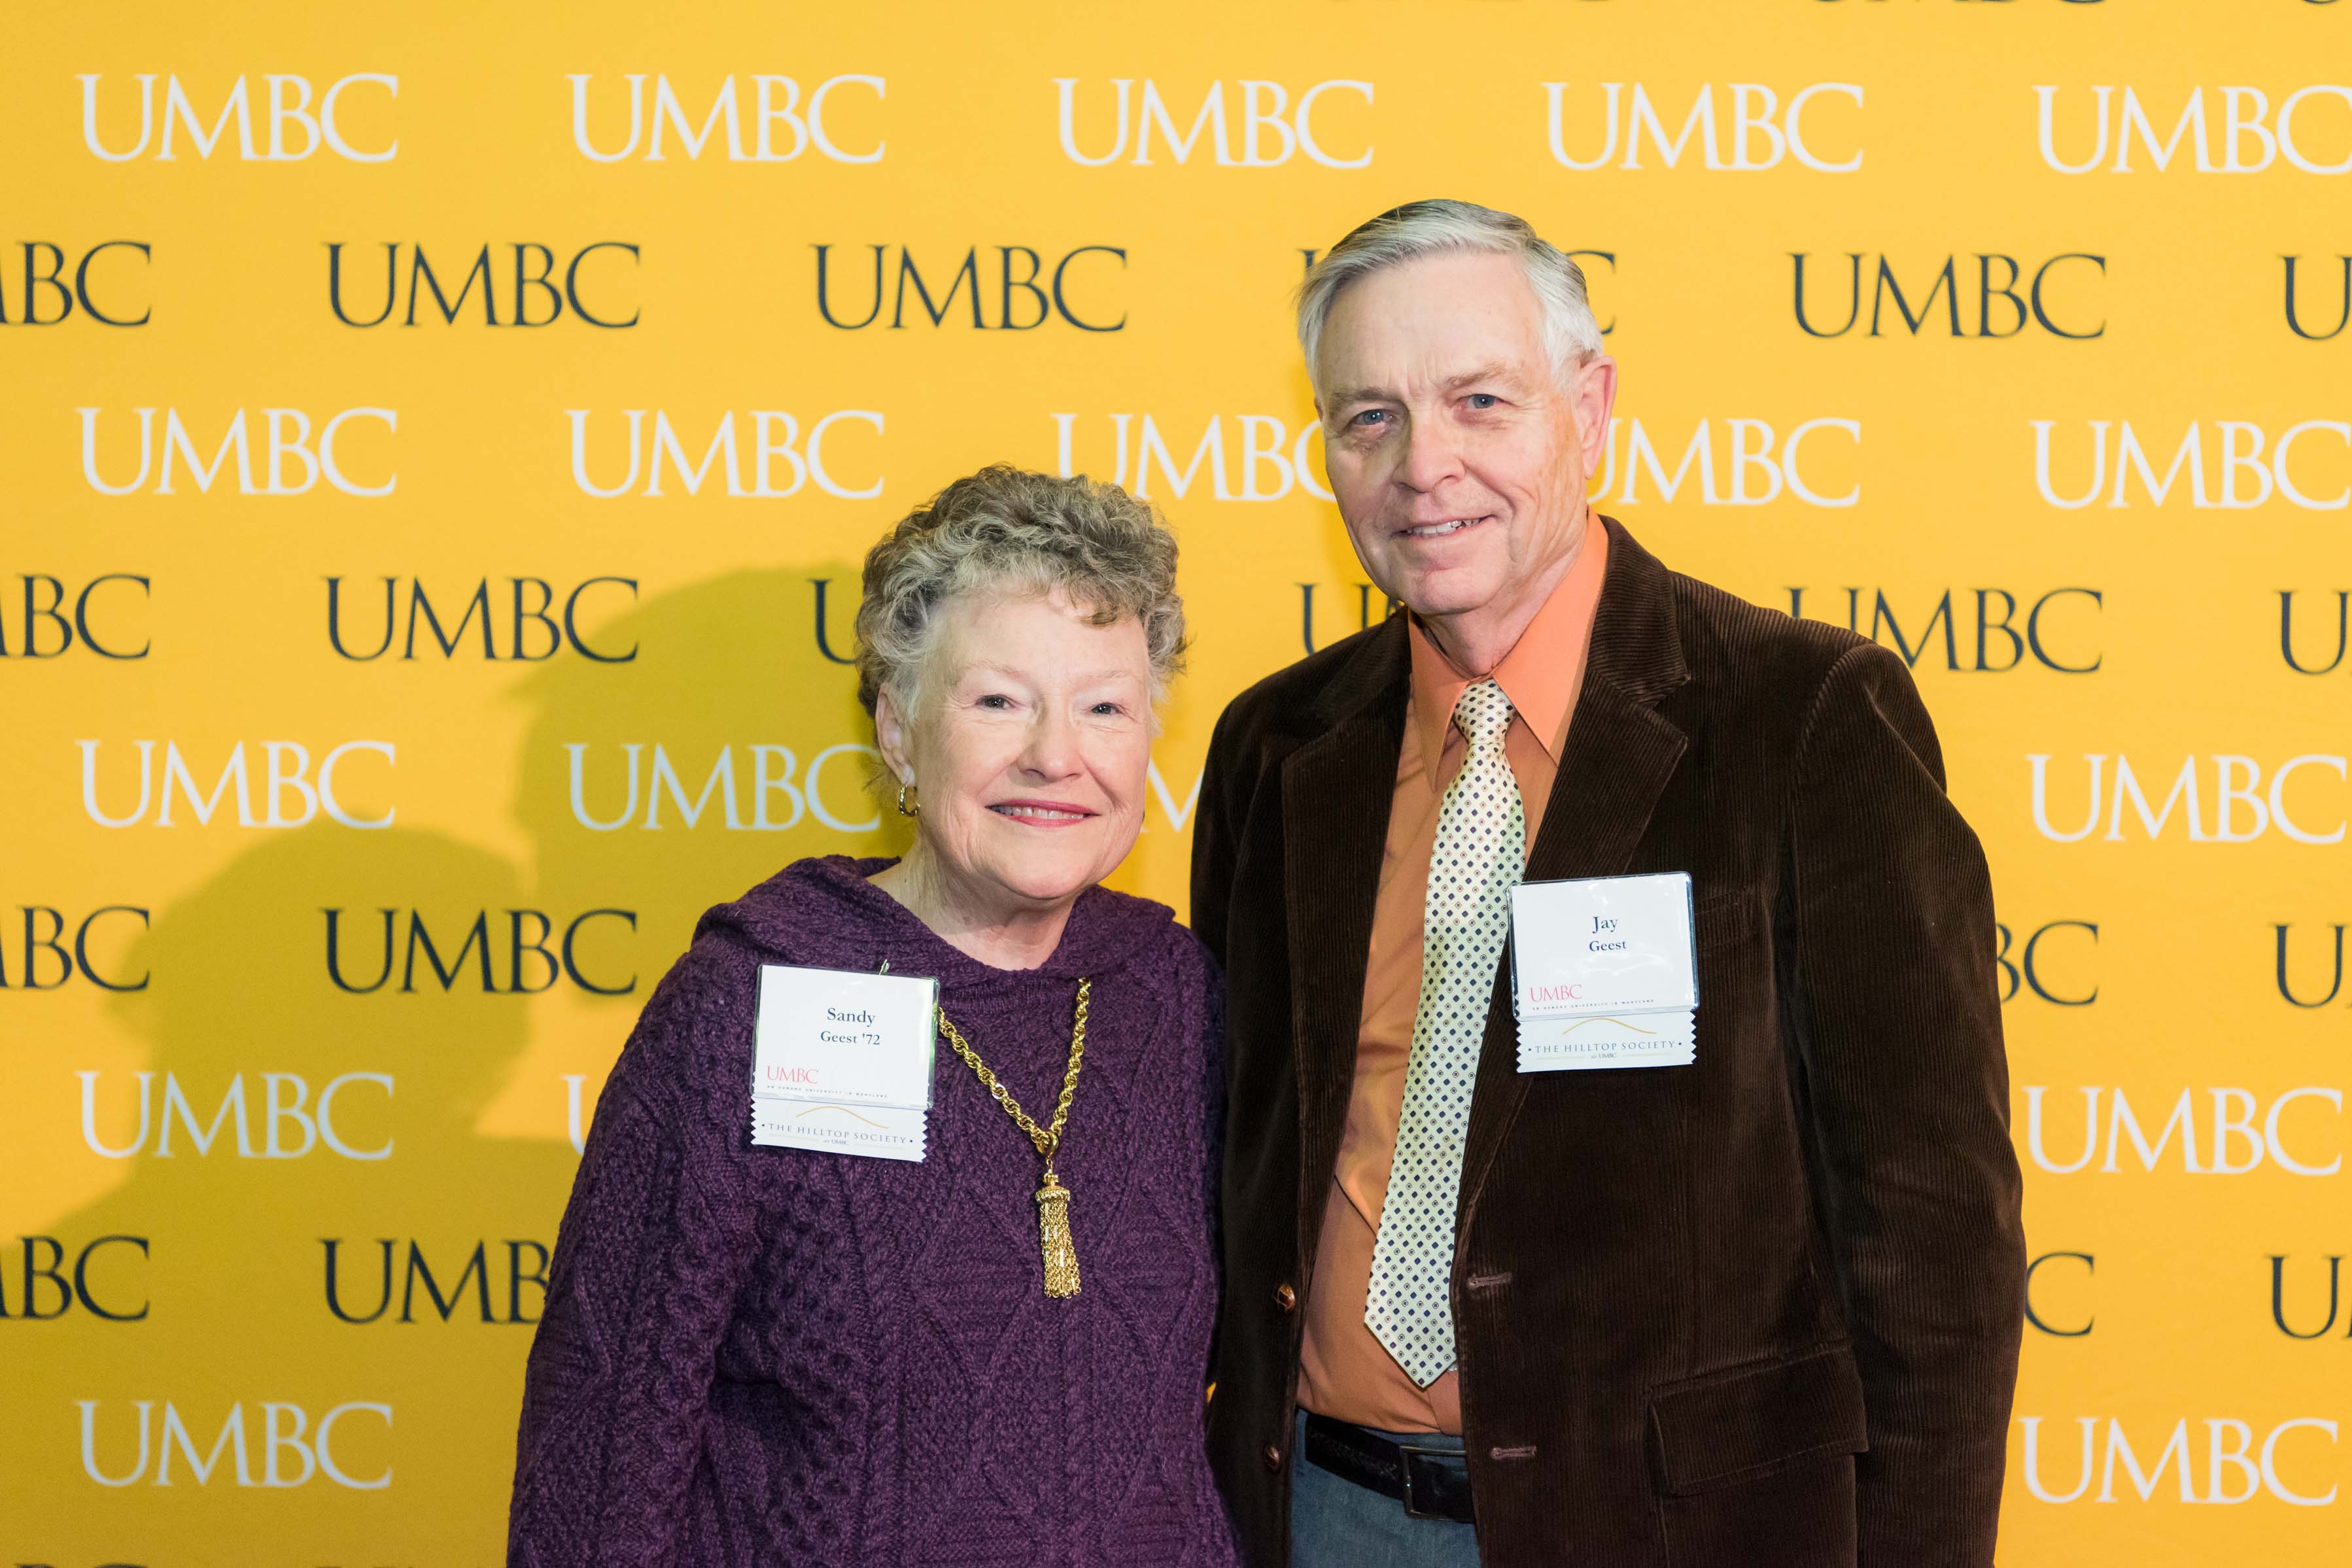 Jay and woman stand in front of UMBC wall for Scholarship luncheon